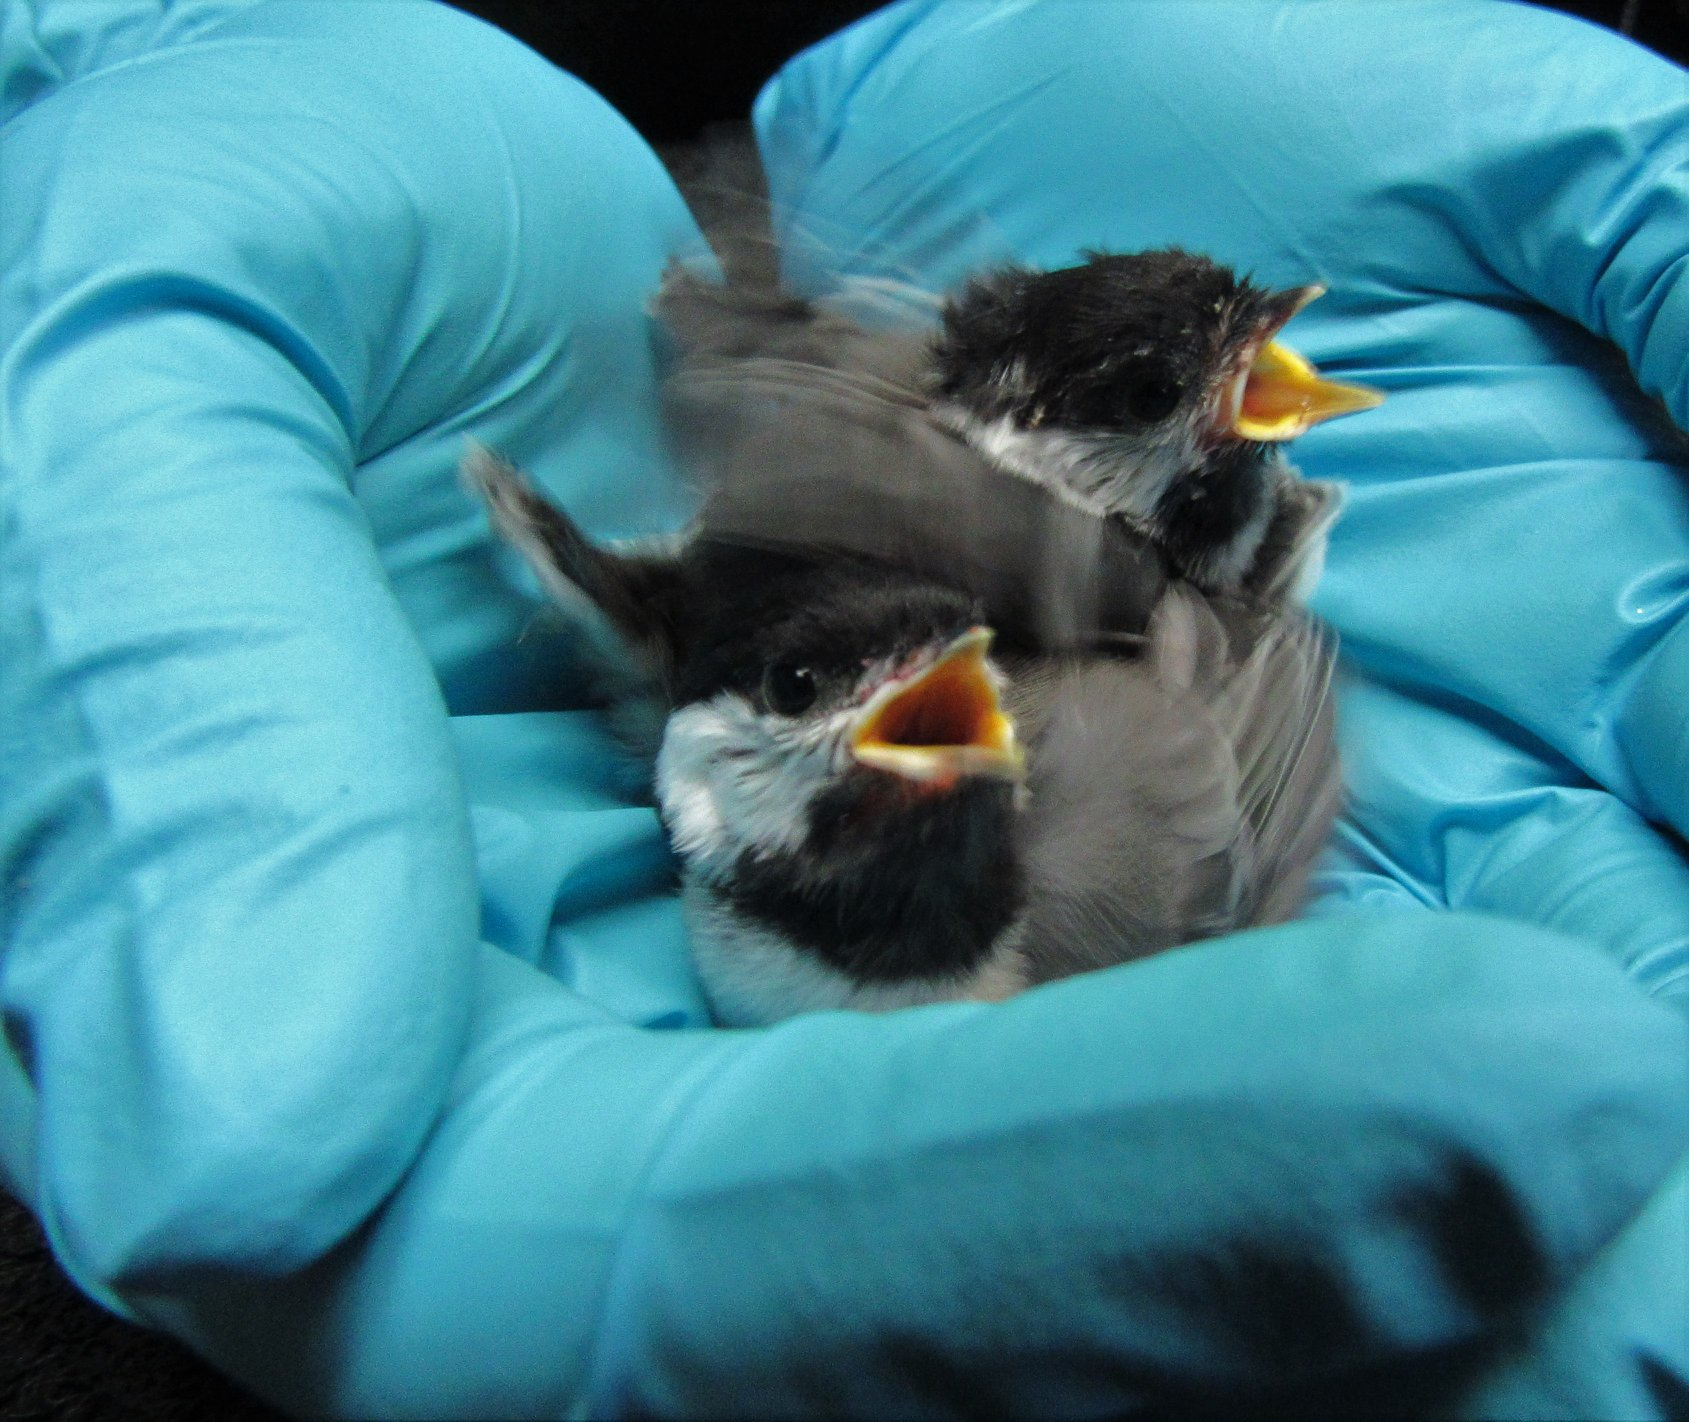 Baby chickadees are so tiny and yet so full of energy.